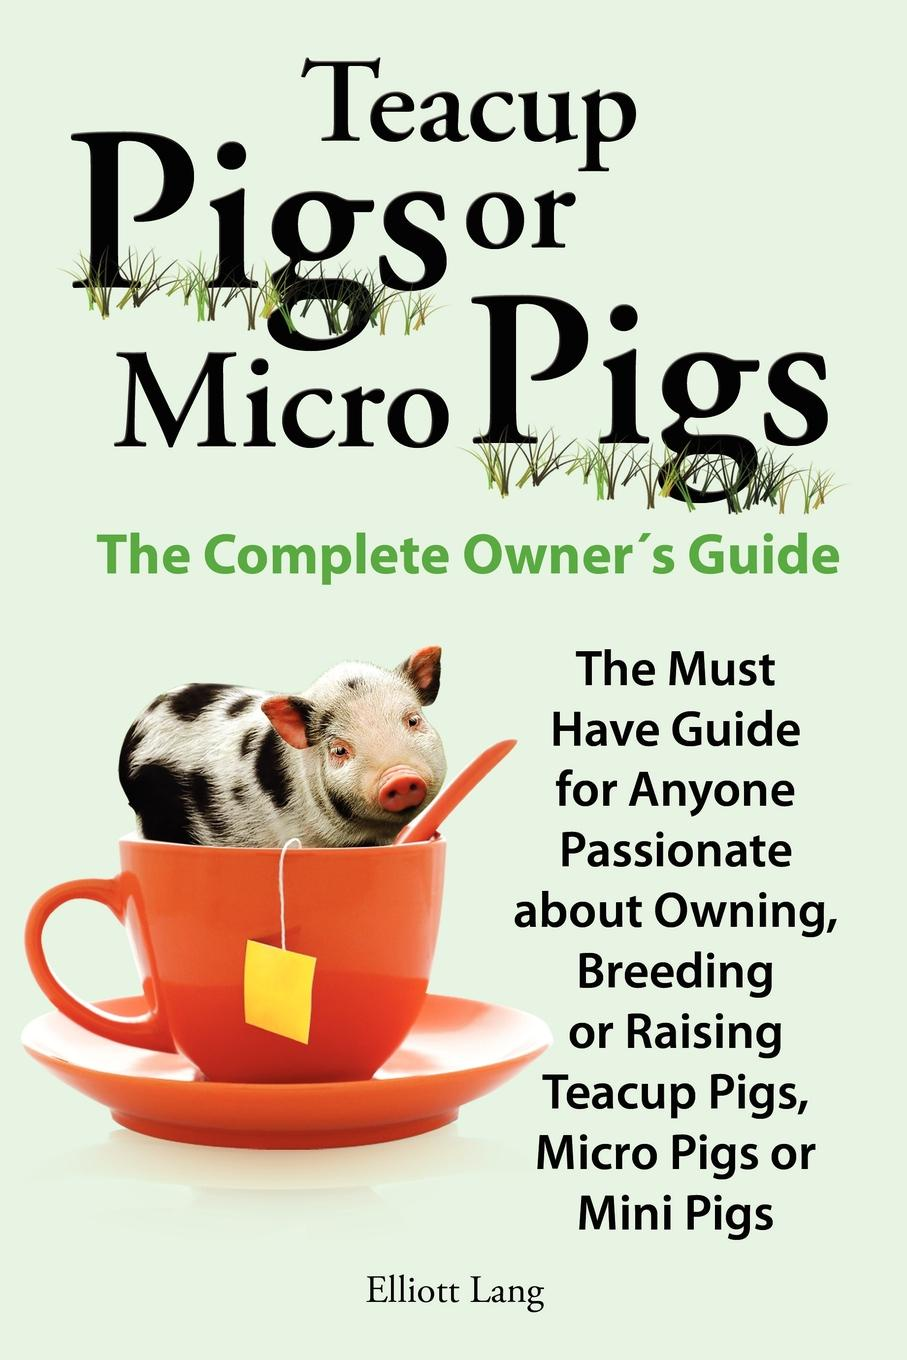 Elliott Lang Teacup Pigs and Micro Pigs, the Complete Owner's Guide